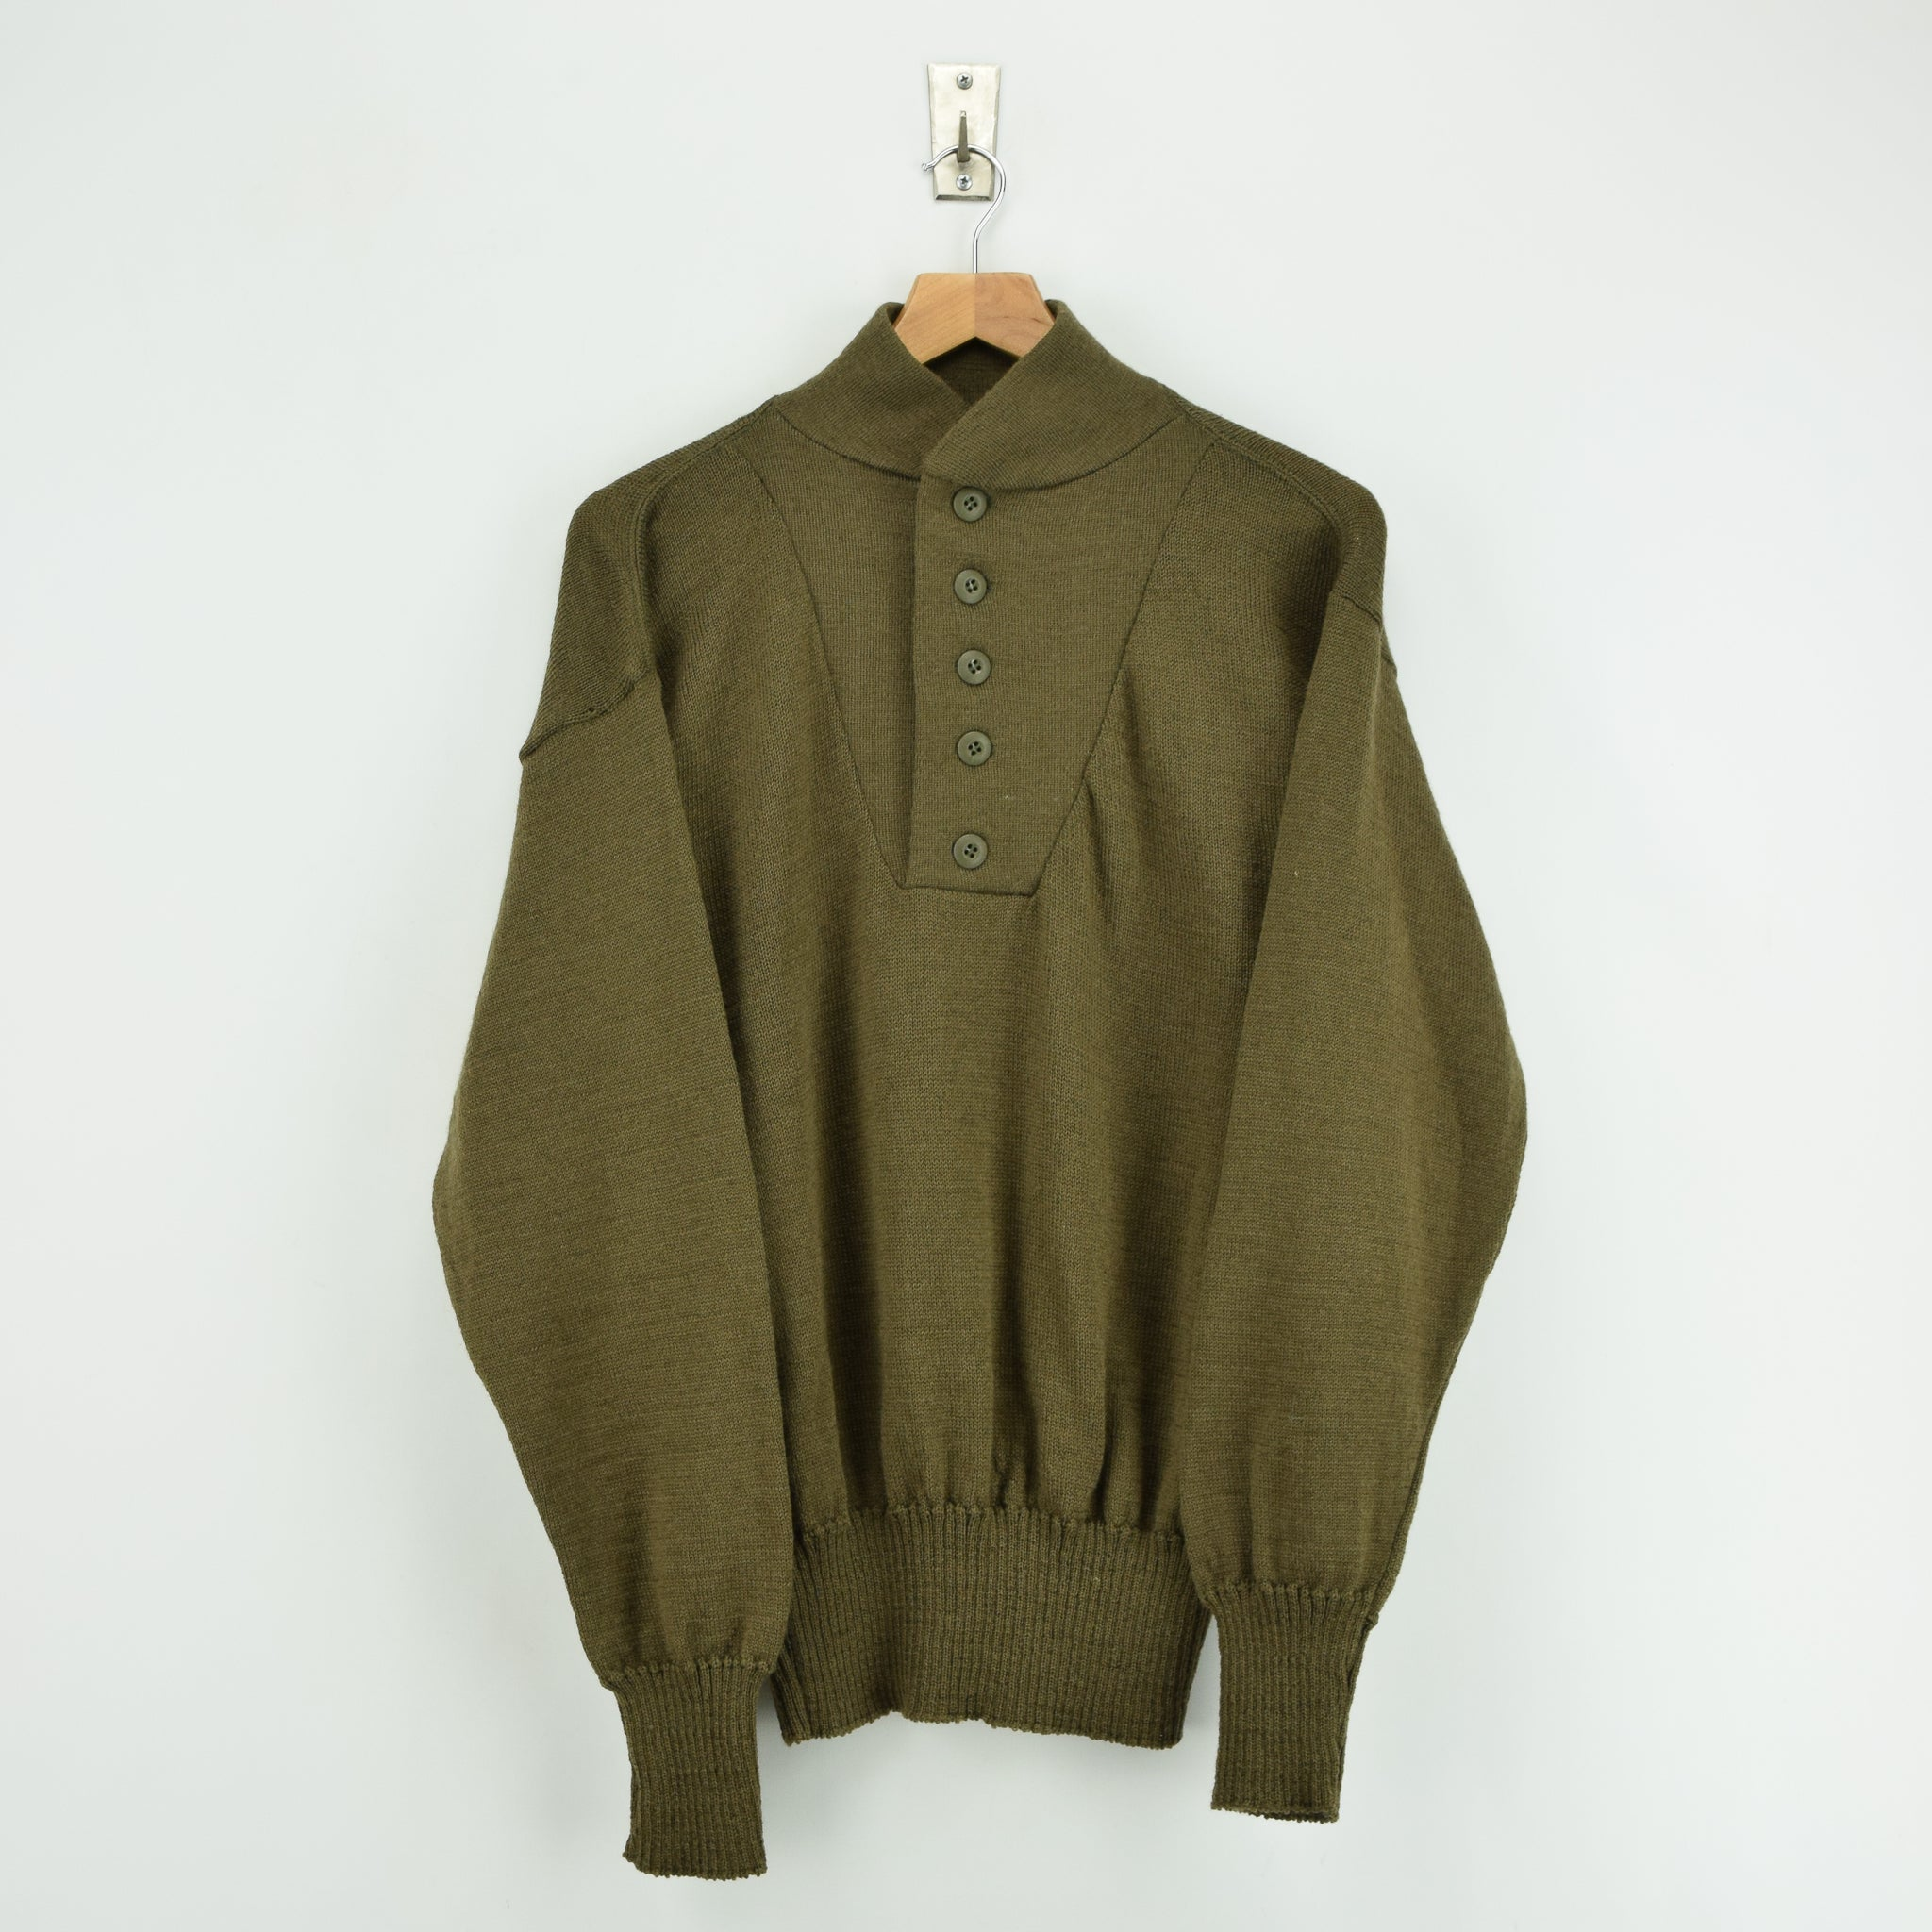 Vintage 60s US Army Military Sweater Olive Wool USA Made Button Pullover M front